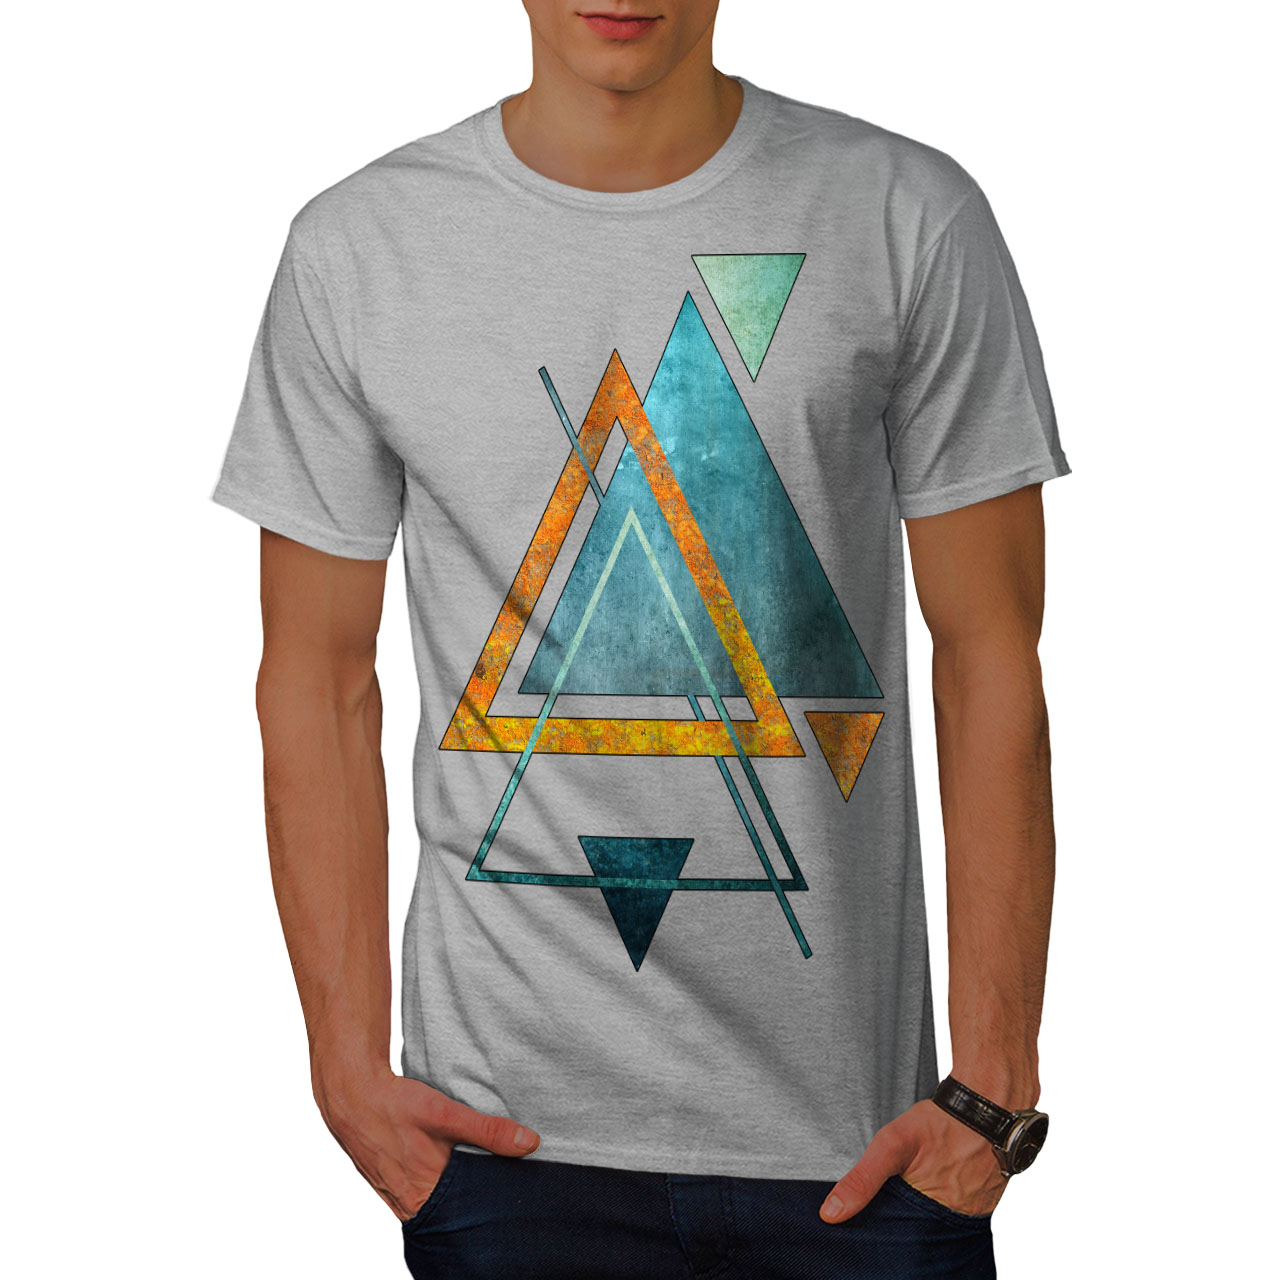 Wellcoda-Abstract-Triangle-T-shirt-homme-forme-design-graphique-imprime-Tee miniature 15